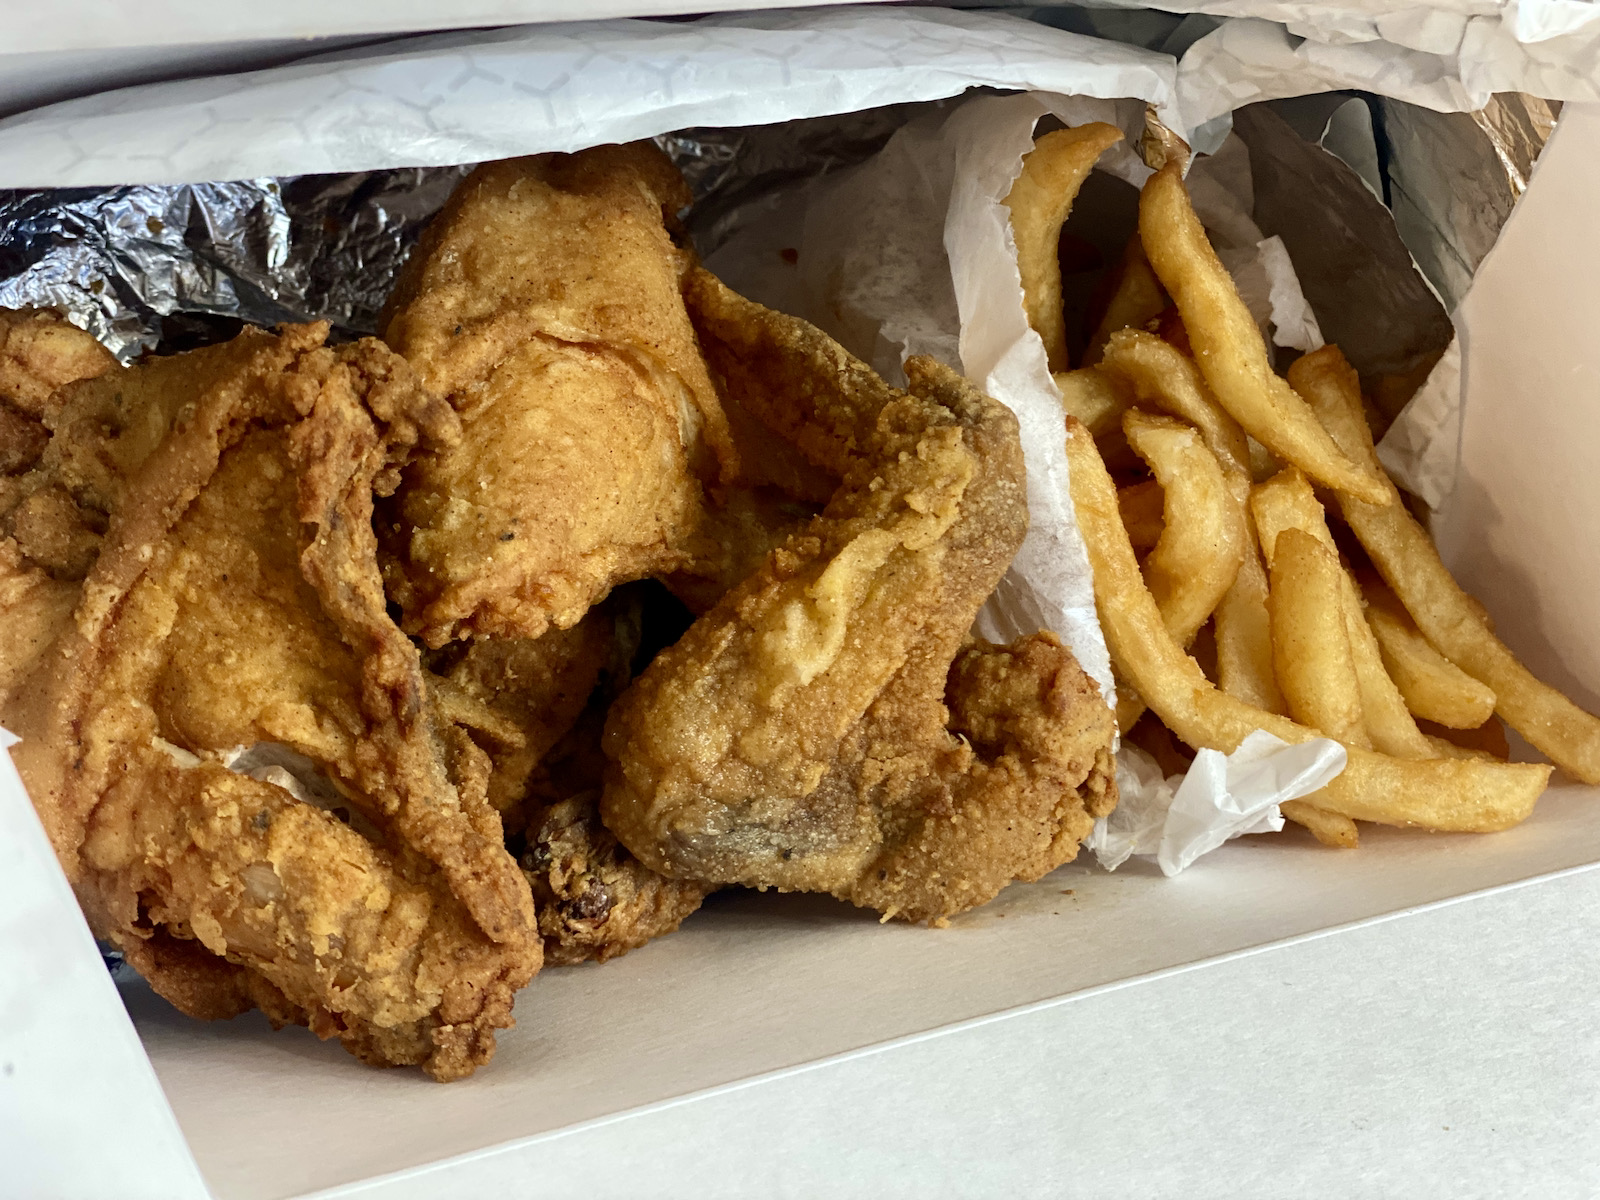 Fried chicken at MooSa's